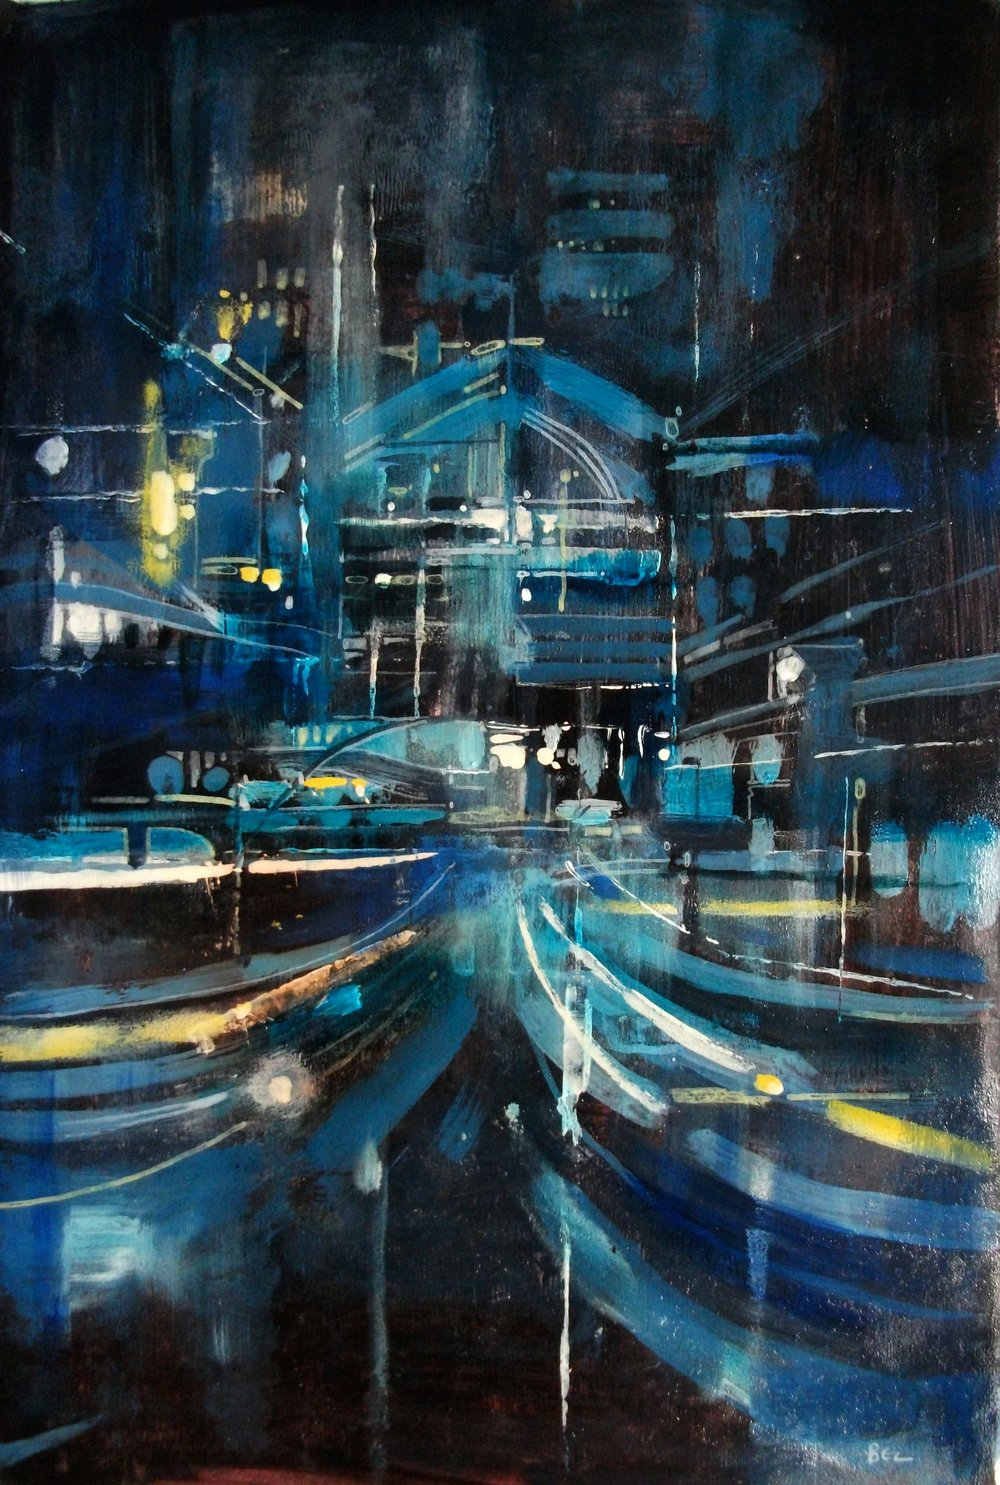 "'Cityscape VI' ,  Code no. 2803   Acrylics & Mixed Media on Paper with Oil Glazing, 18"" x 12"""